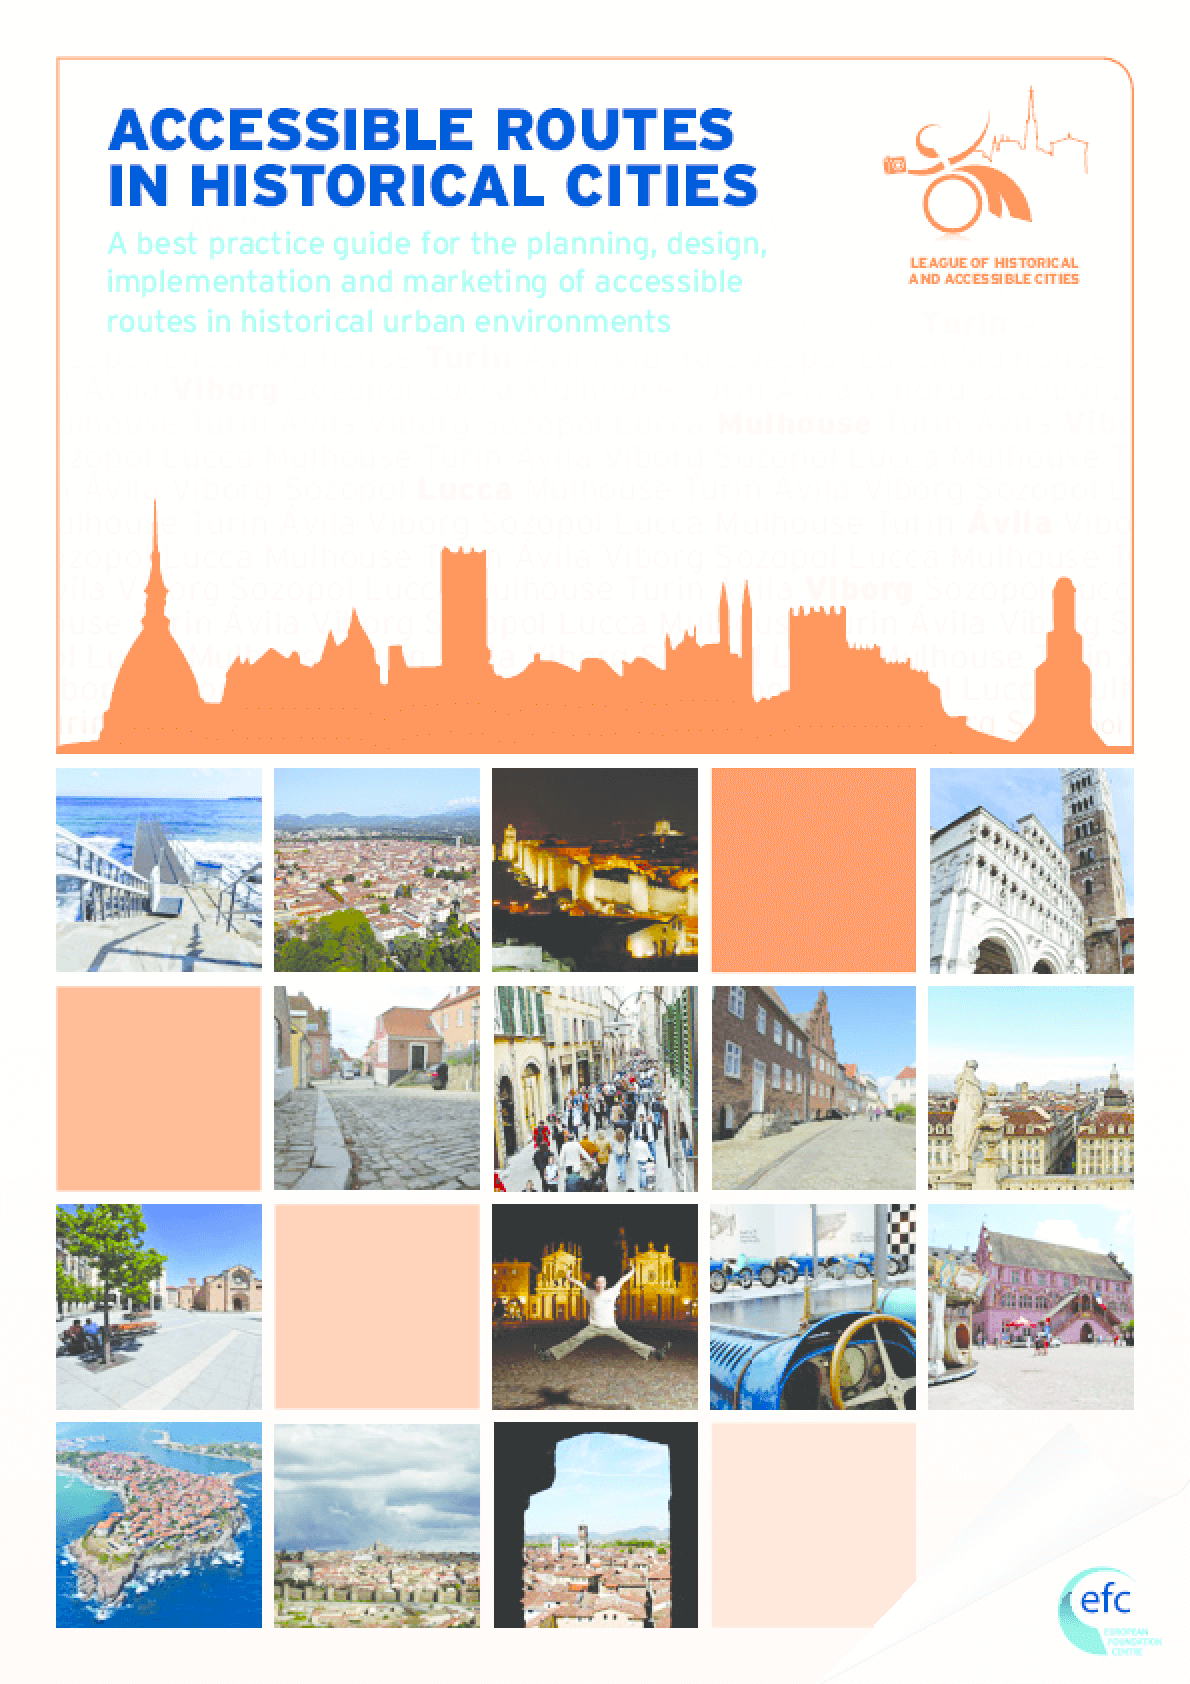 Accessible Routes in Historical Cities : A Best Practice Guide for the Planning, Design, Implementation and Marketing of Accessible Routes in Historical Urban Environments